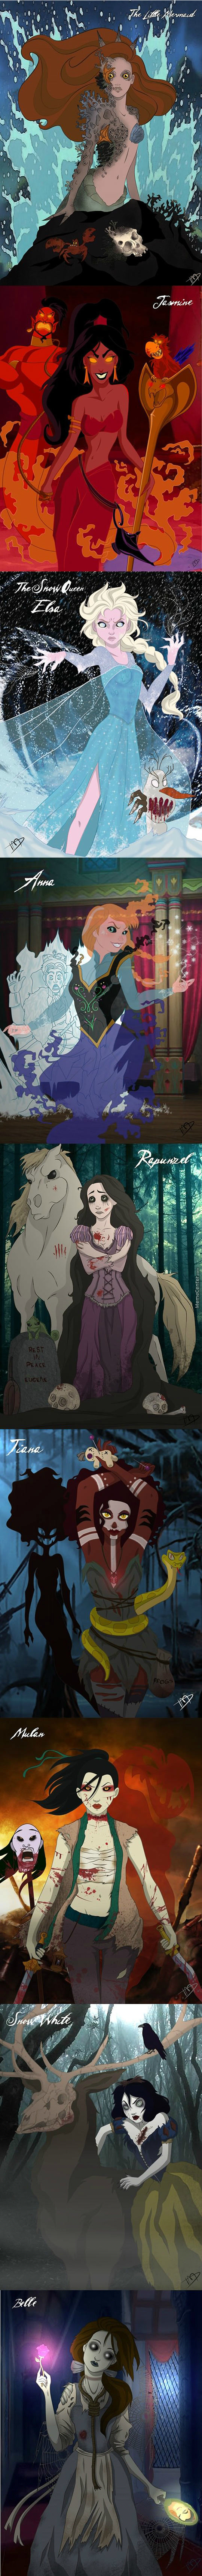 If Disney Princesses Were Darker And More Twisted